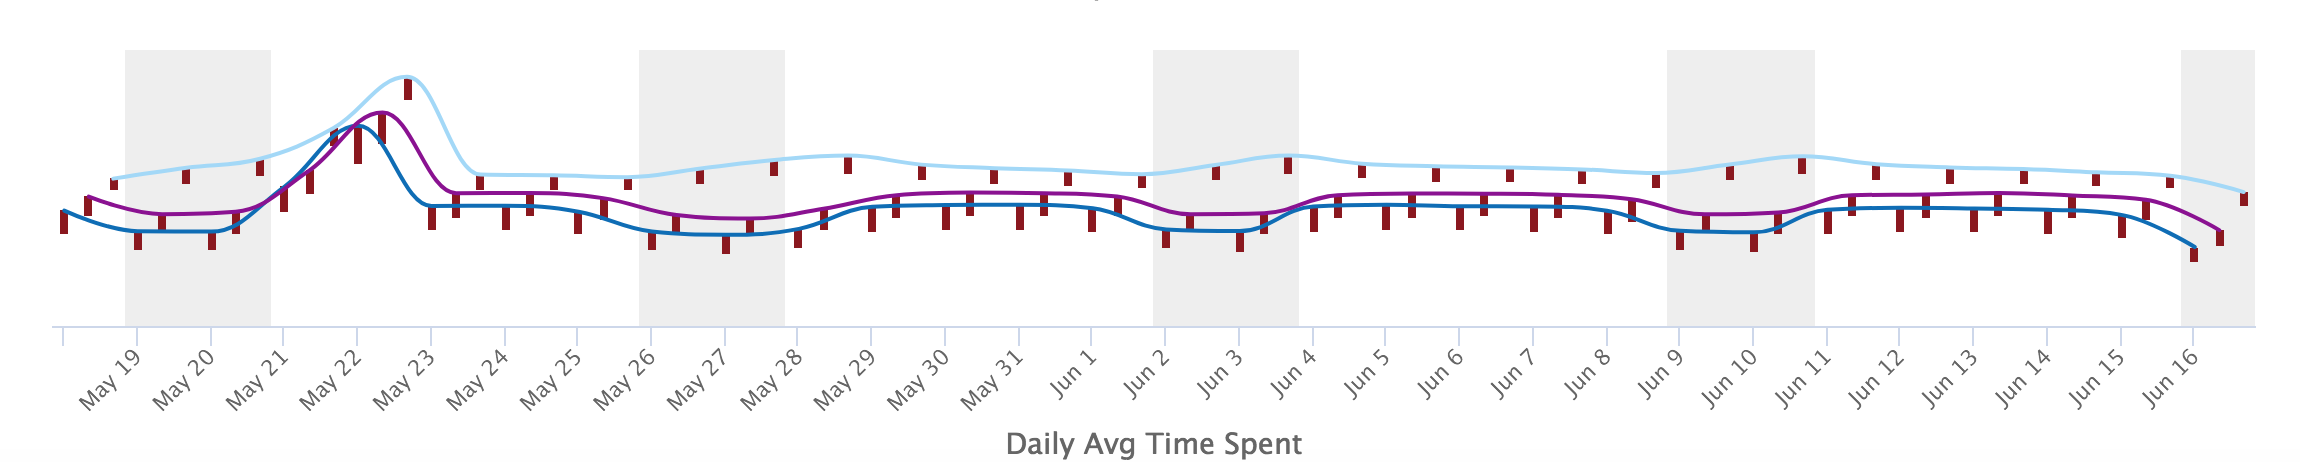 App Activity Daily Trend Report; Daily Avg Time Spent Chart